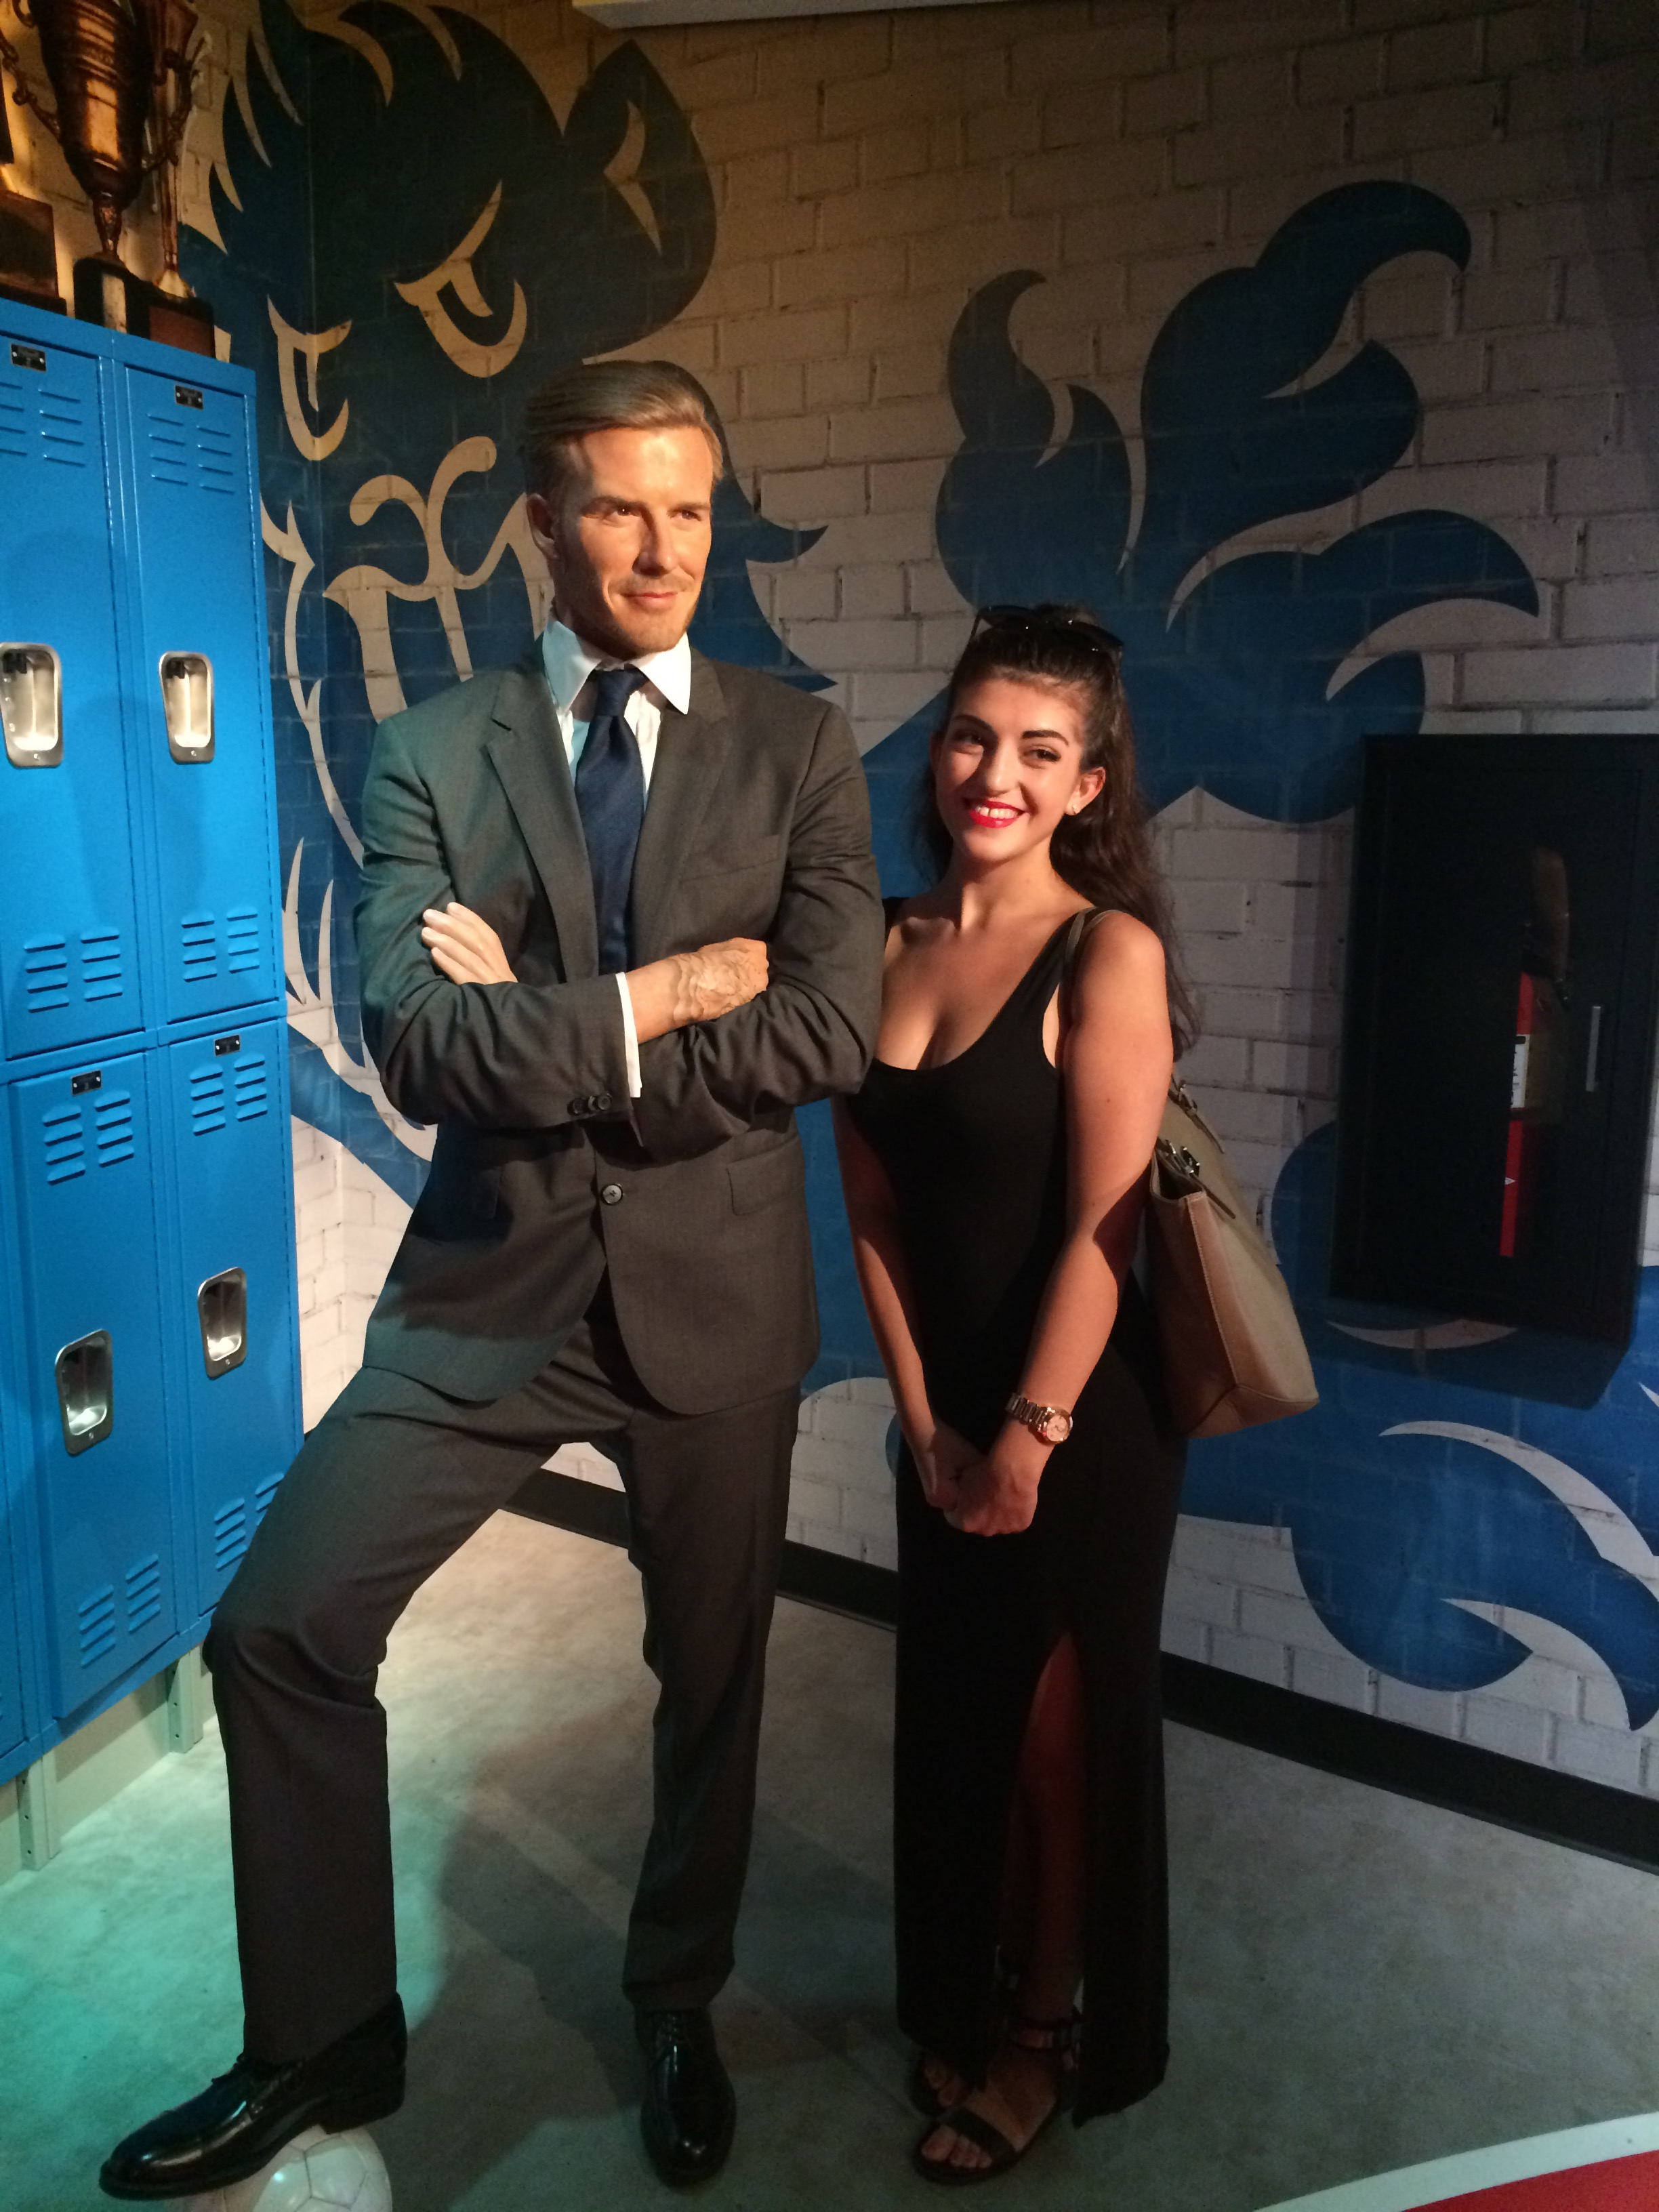 At Madame Tussauds Orlando, I got to take a photo with (a wax figure of) my all-time celebrity crush, Mr. David Beckham